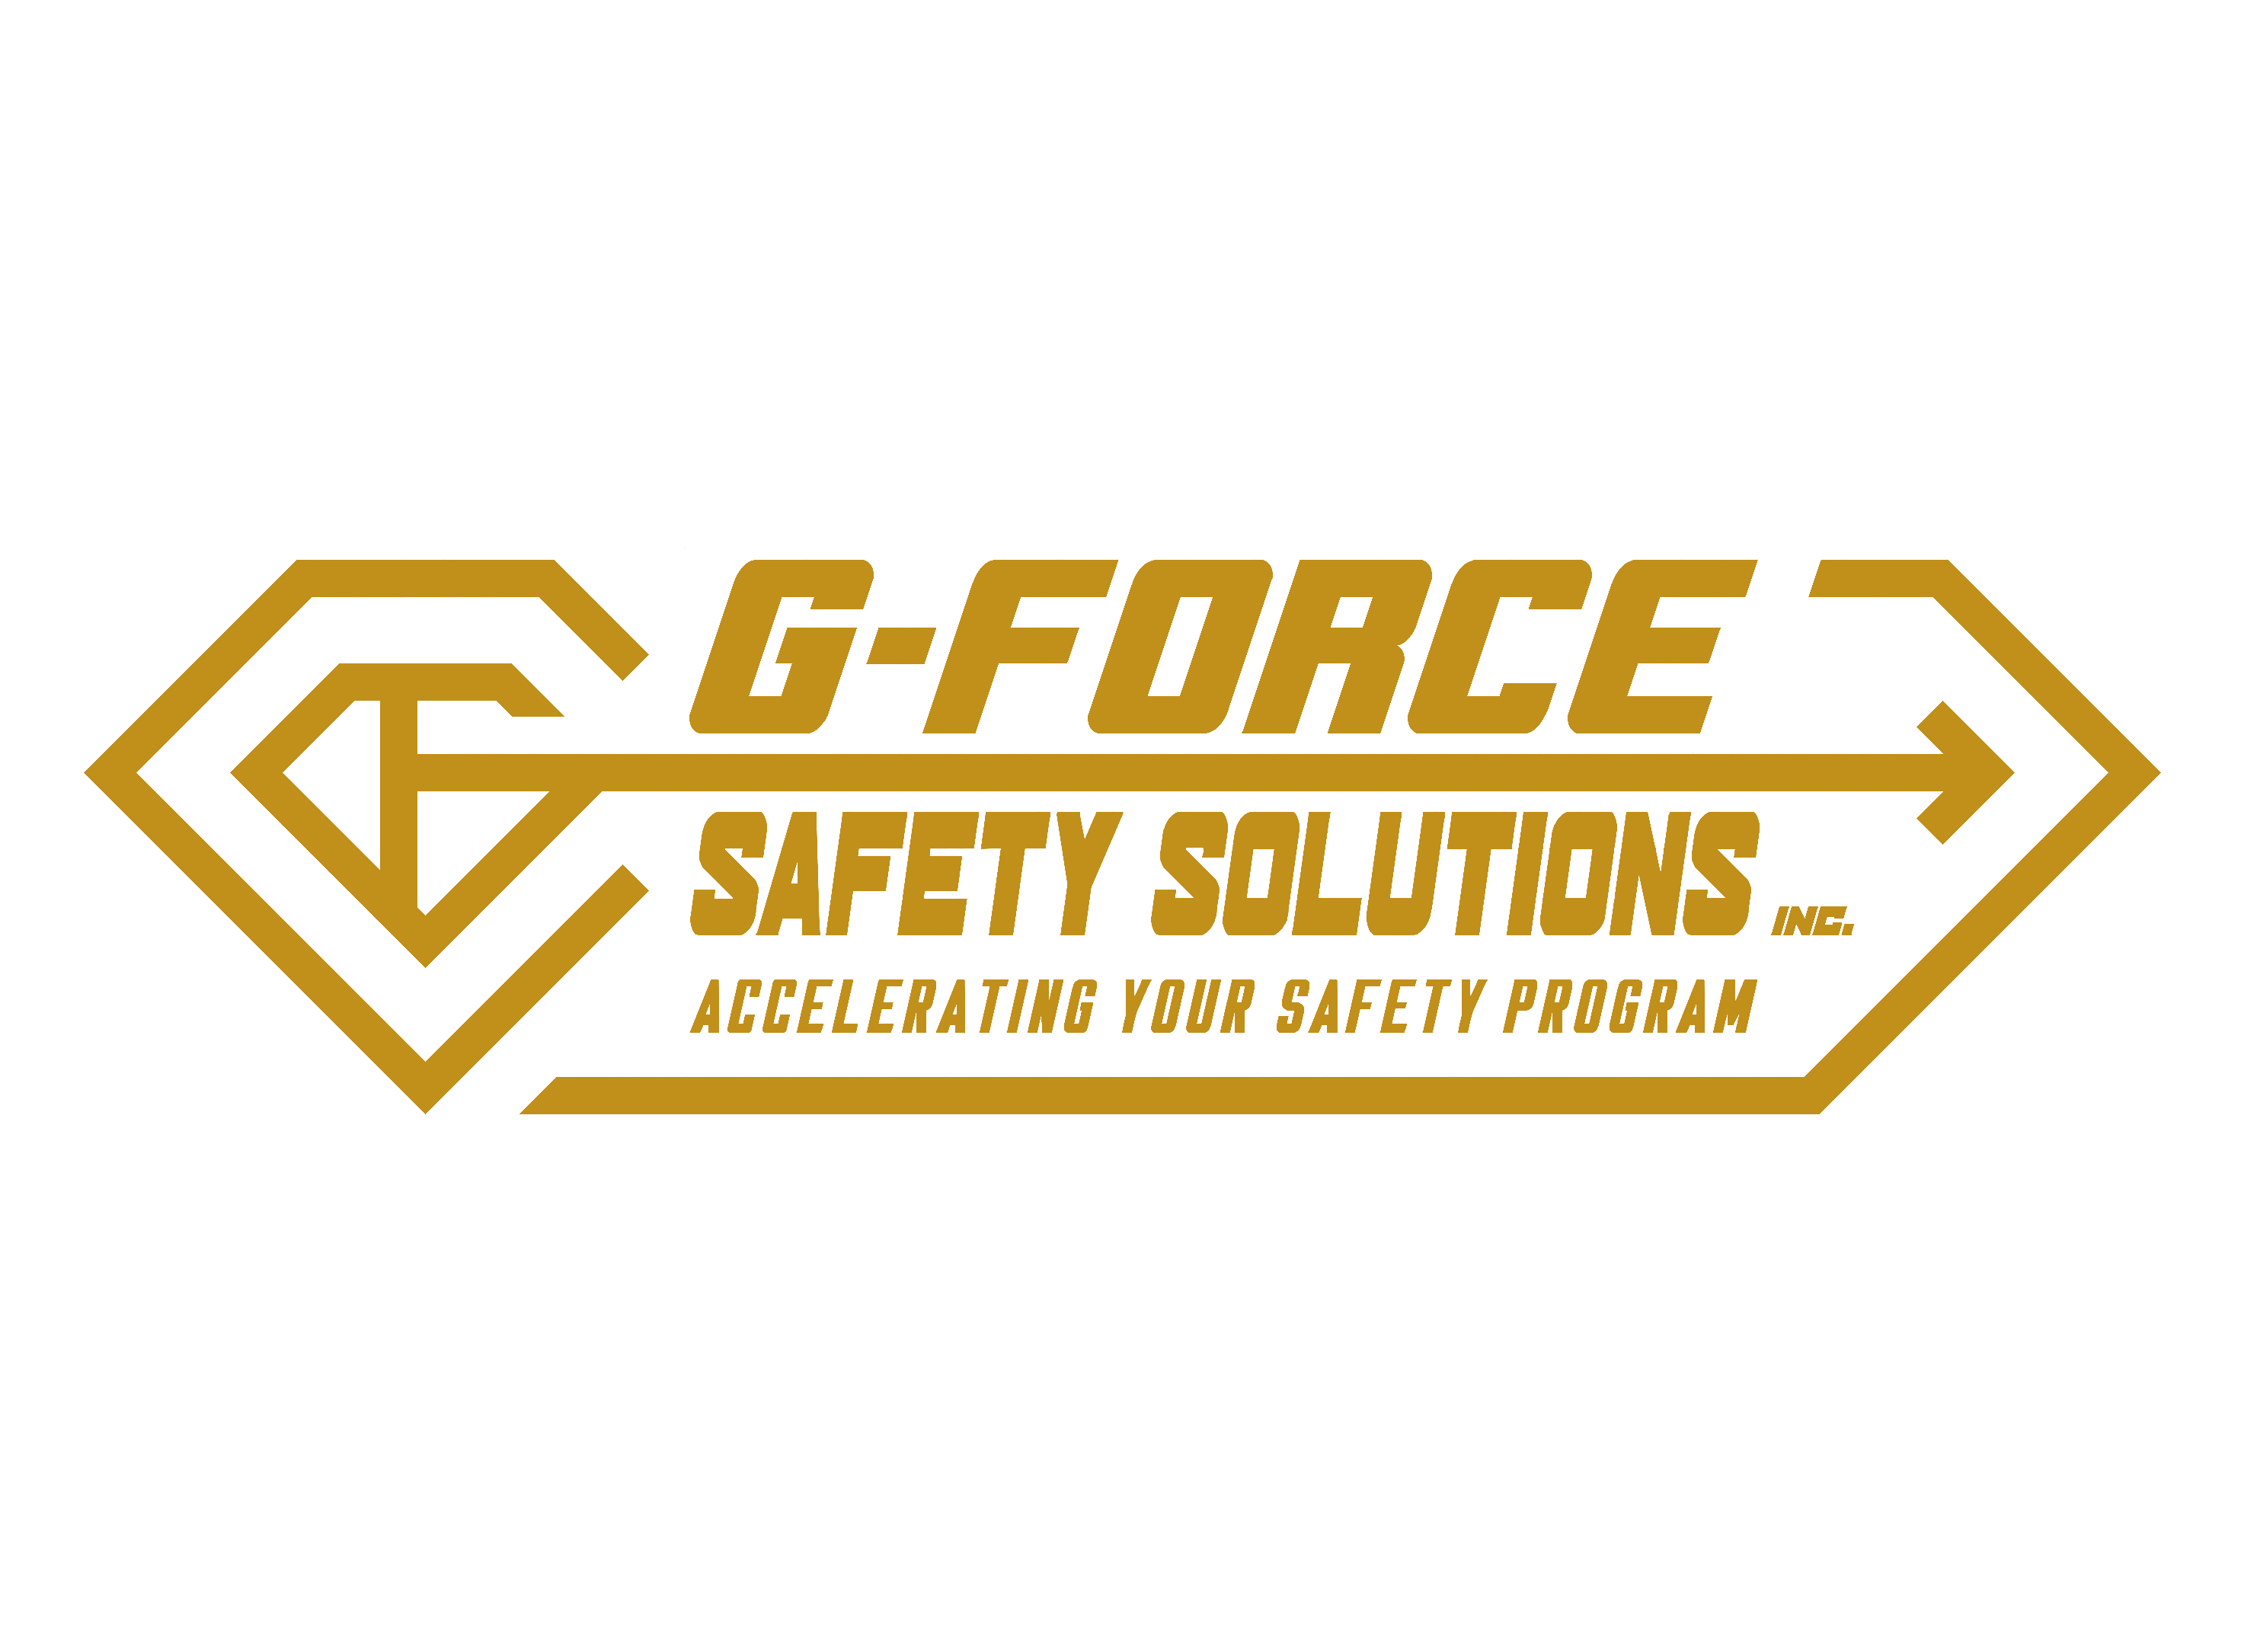 G-FORCE SAFETY SOLUTIONS